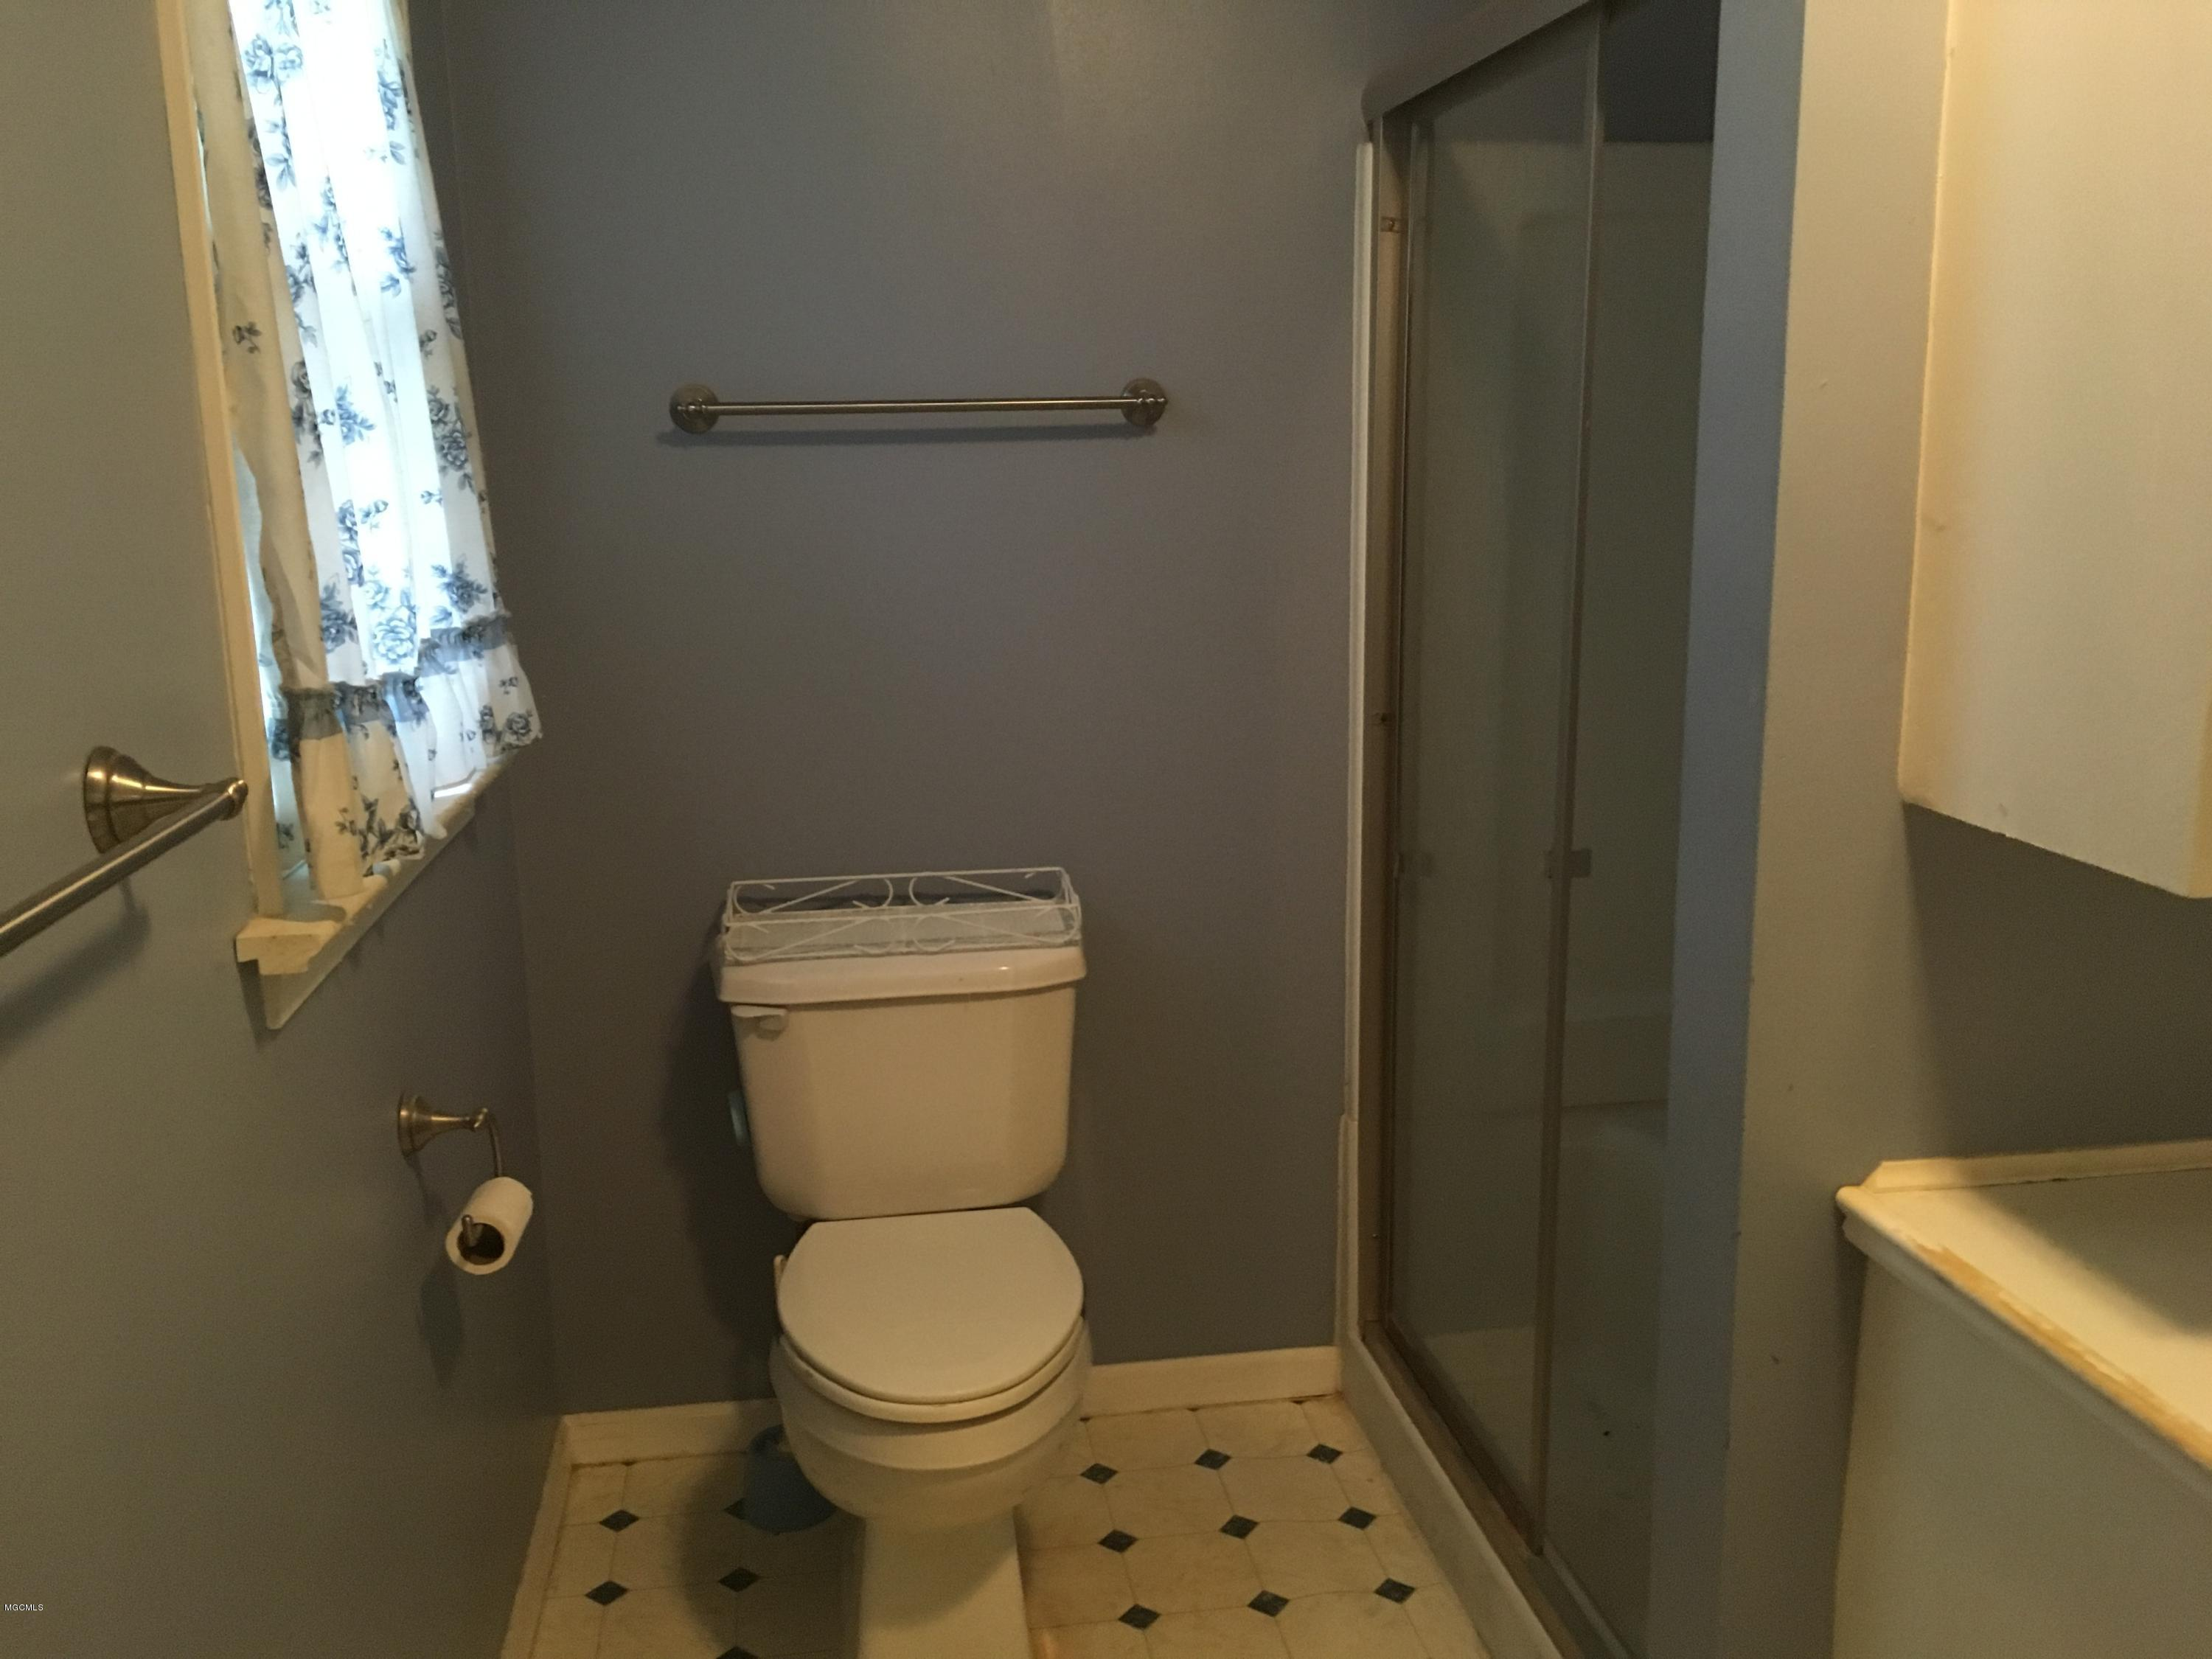 187 Ahern Dr, Biloxi, Mississippi 39530, 1 Bedroom Bedrooms, ,1 BathroomBathrooms,Single-family,For Sale,Ahern,340909